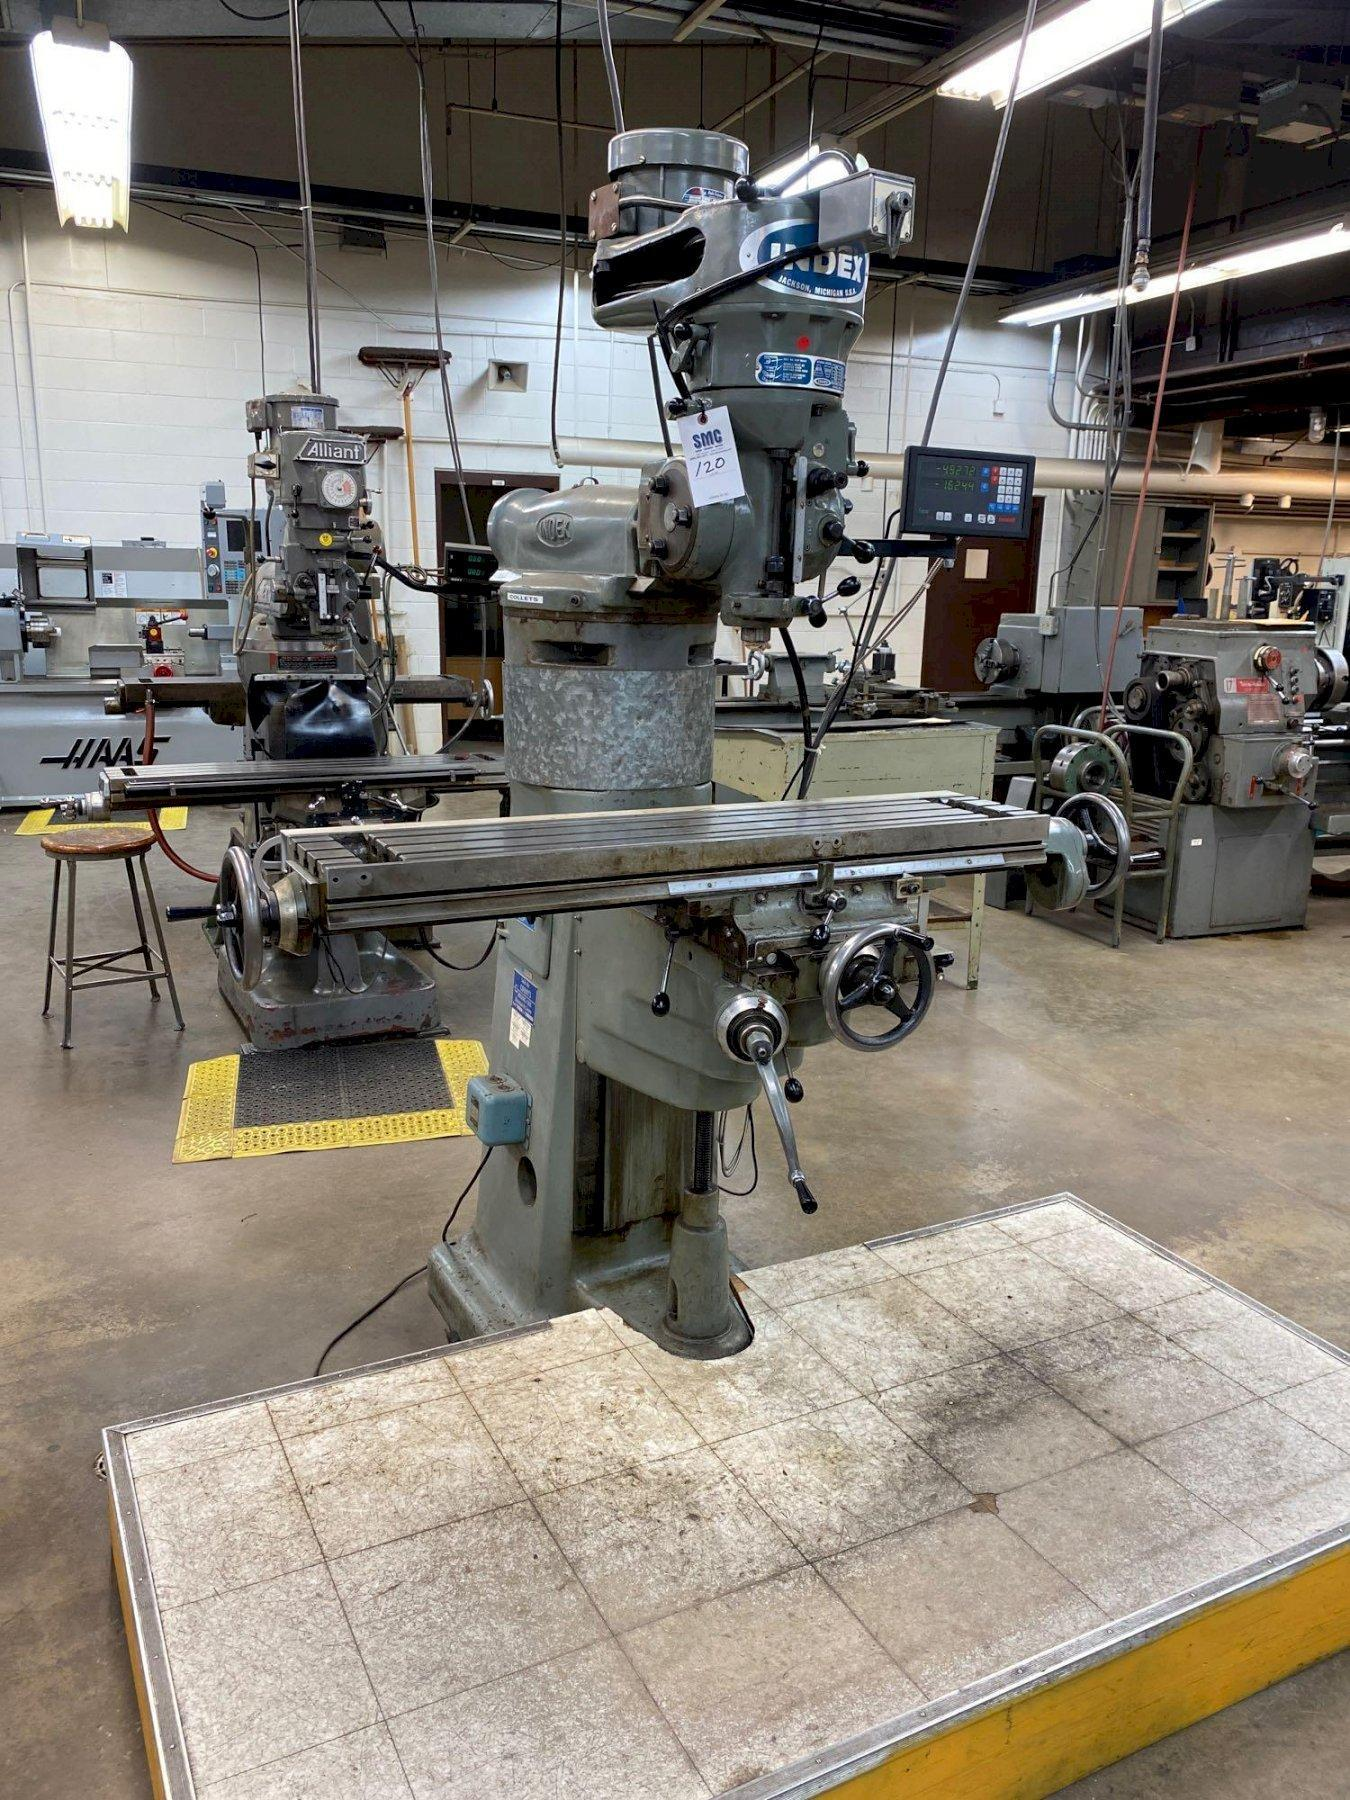 1 - PREOWNED INDEX VARIABLE SPEED VERTICAL MILL, MODEL #: 745, S/N: 14274